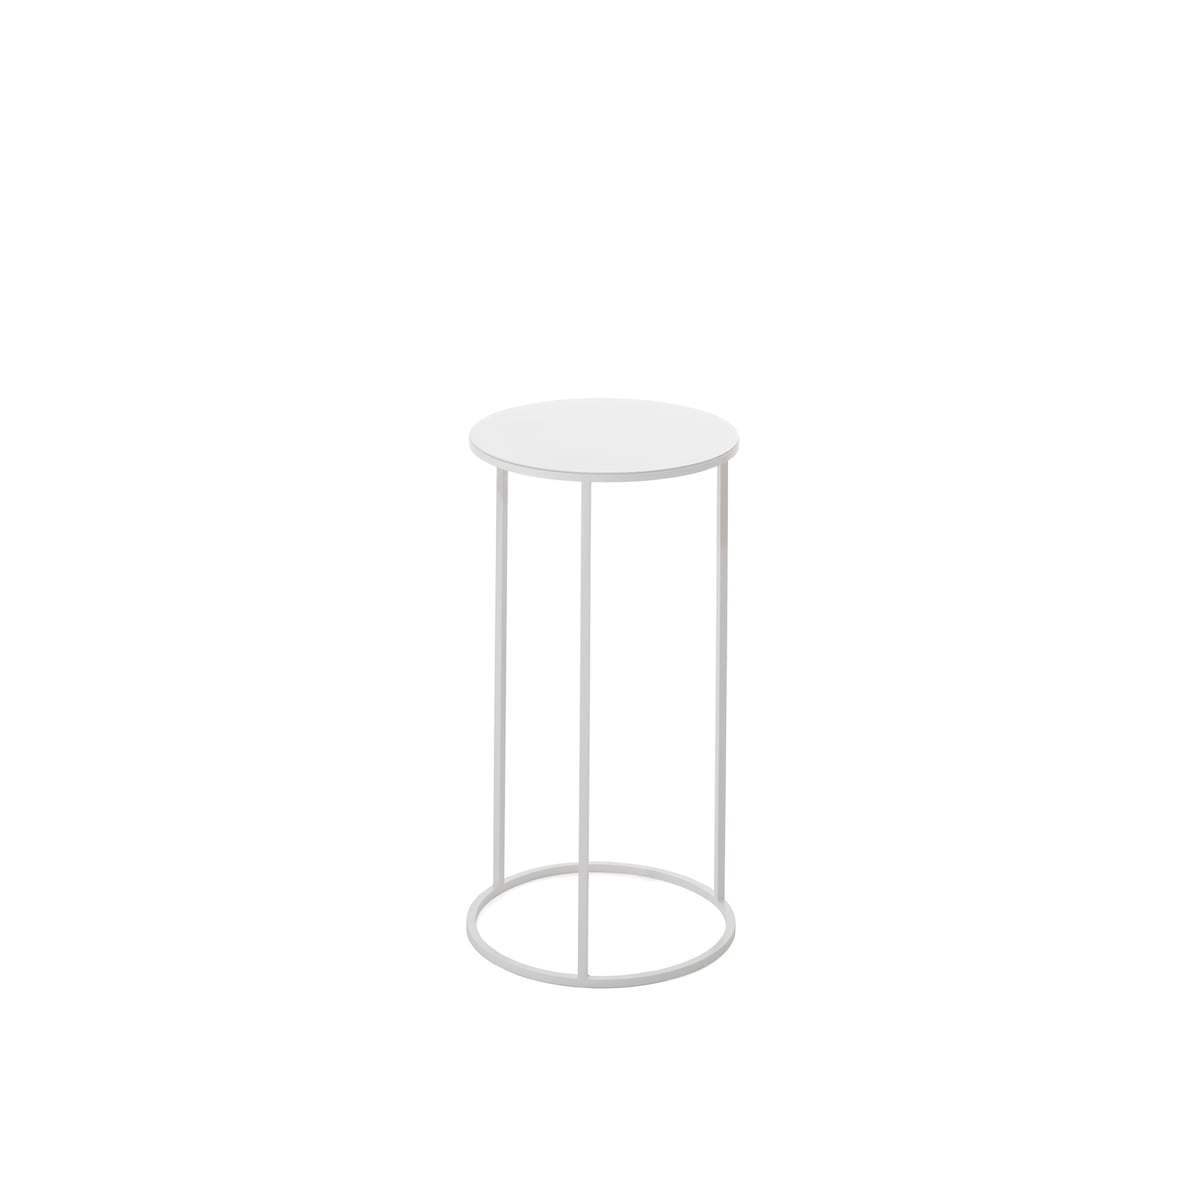 the rack umbrella stand side table schonbuch schoenbuch beistelltisch weiss freisteller outdoor white childrens and chairs kmart accent furniture pieces marble dining traditional